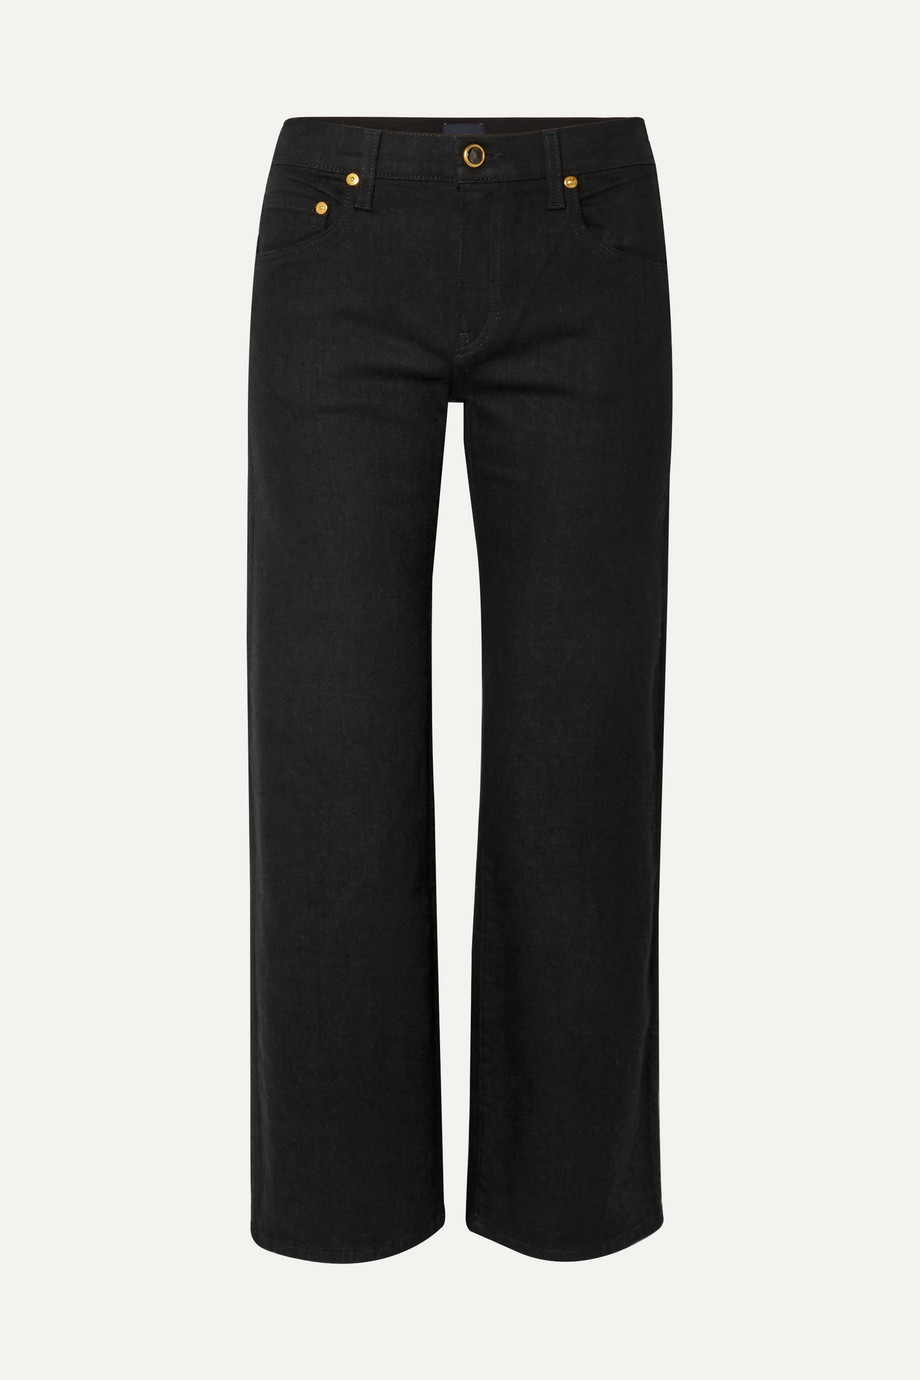 KHAITE Wendell cropped high-rise wide-leg jeans